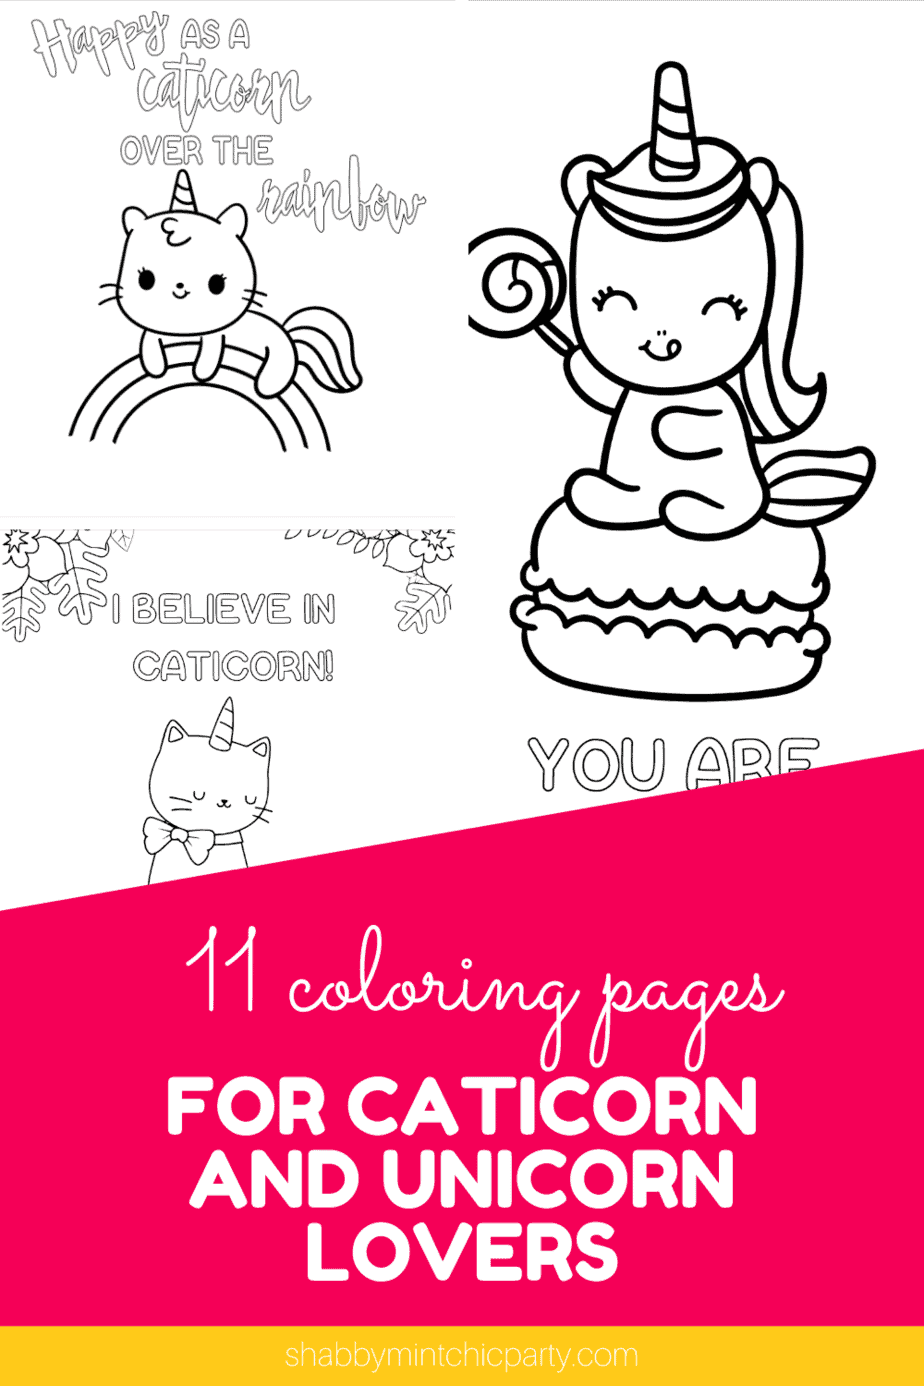 Free Unicorn coloring pages (11 total pages) - Shabby Mint ...